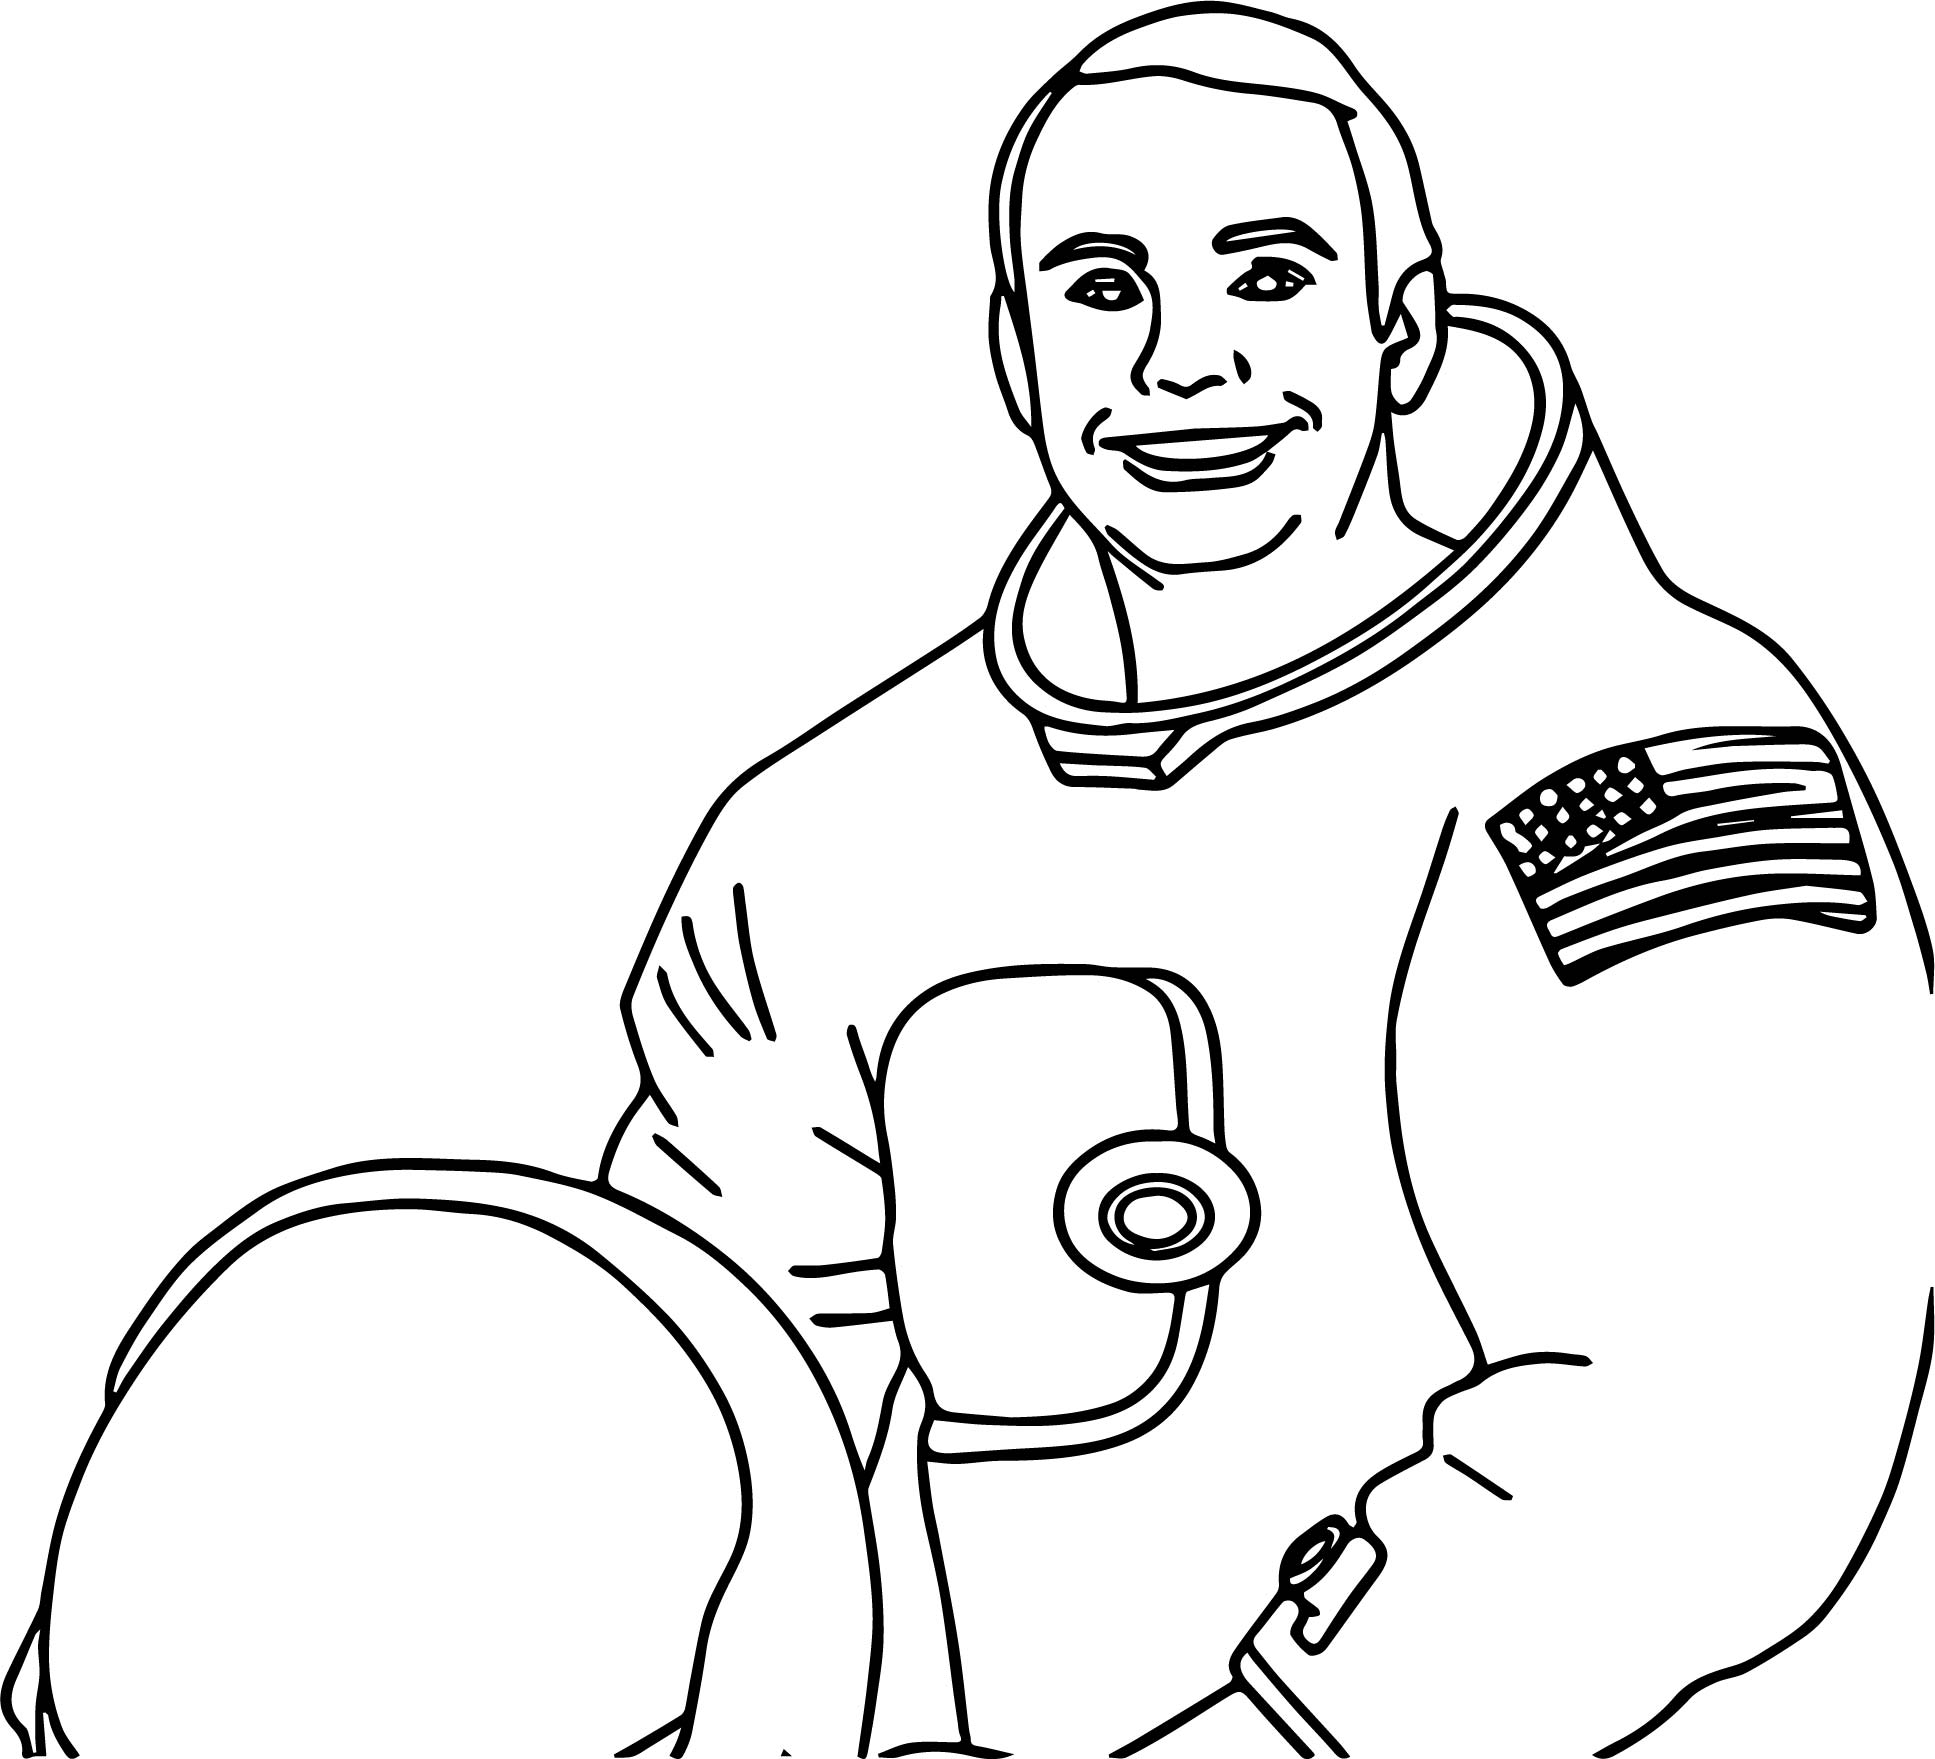 American Astronaut Coloring Page